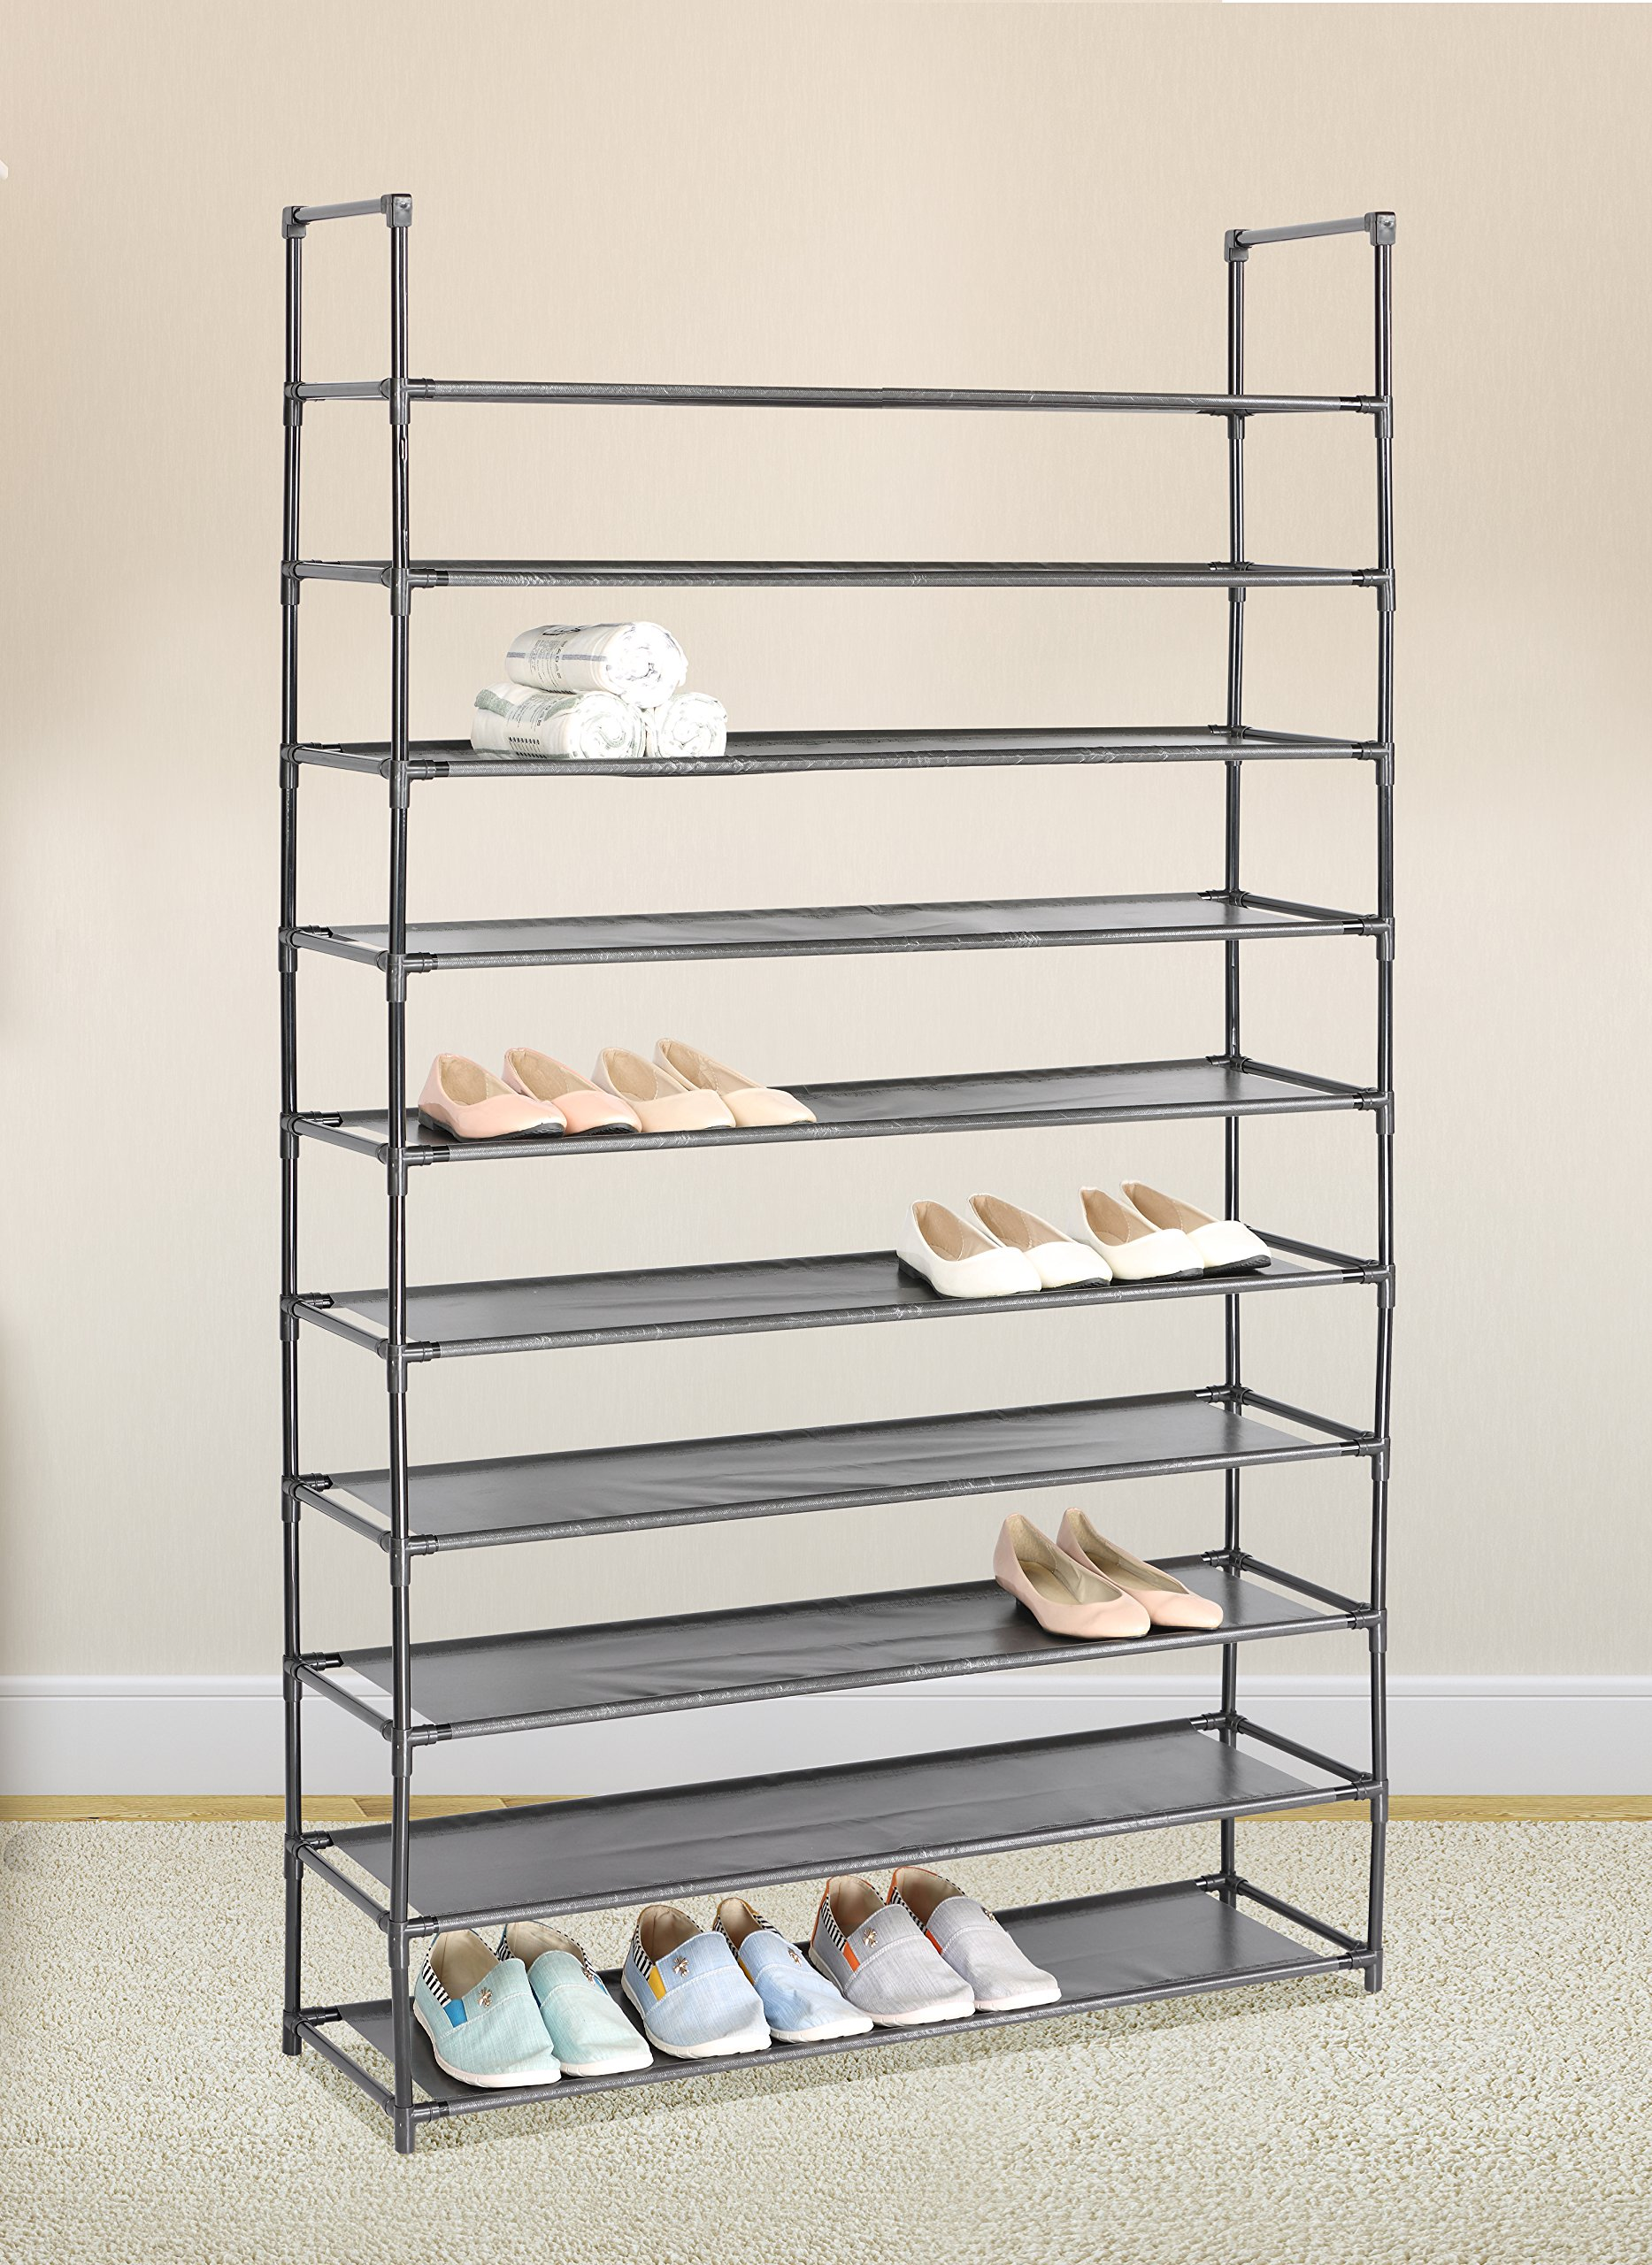 Charmant Black 10 Tiers Shoe Rack 50 Pairs Non Woven Fabric Shoe Tower Storage  Organizer Cabinet